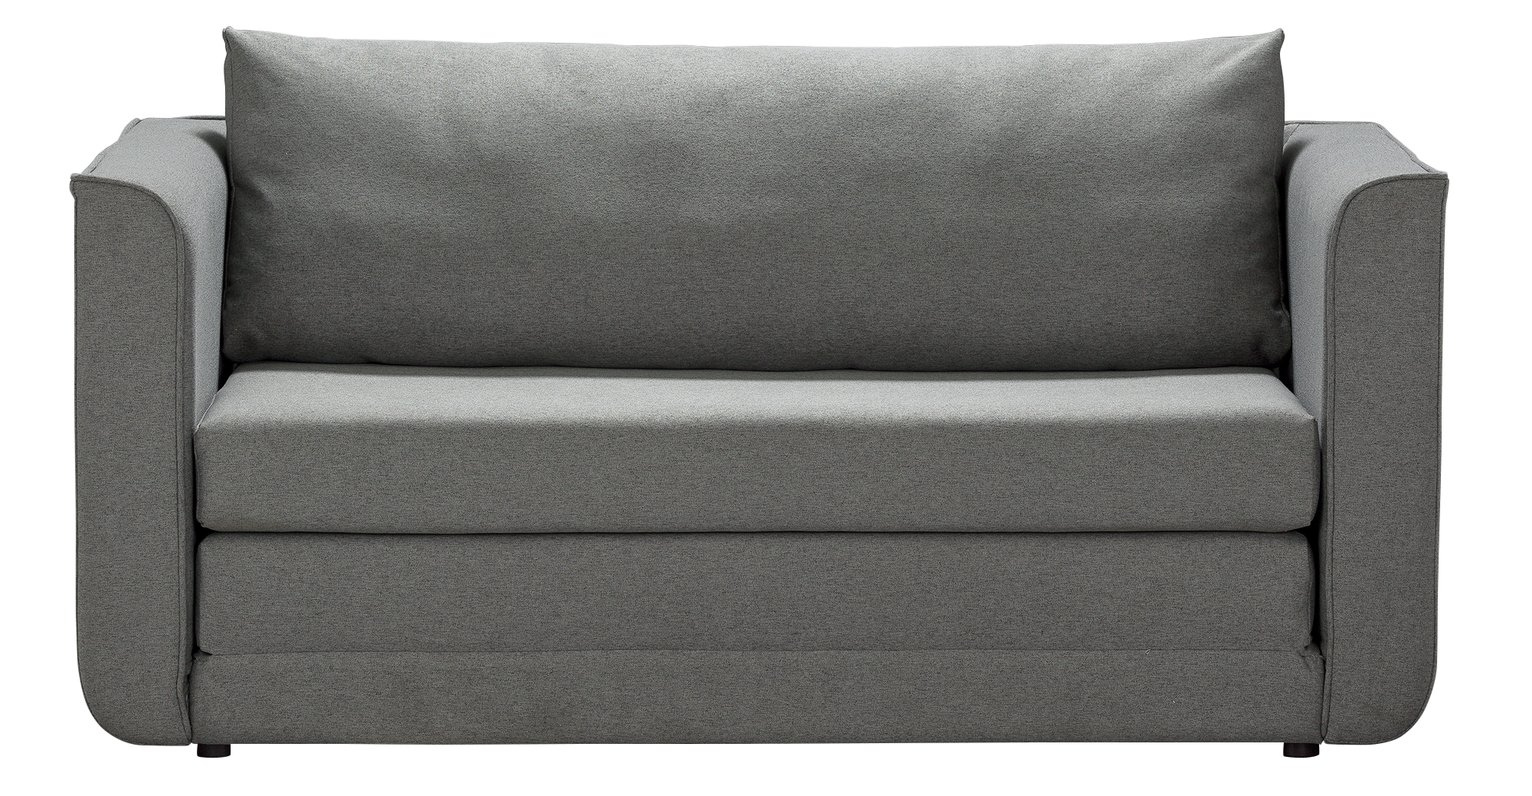 Argos Home Ada 2 Seater Fabric Sofa Bed - Grey